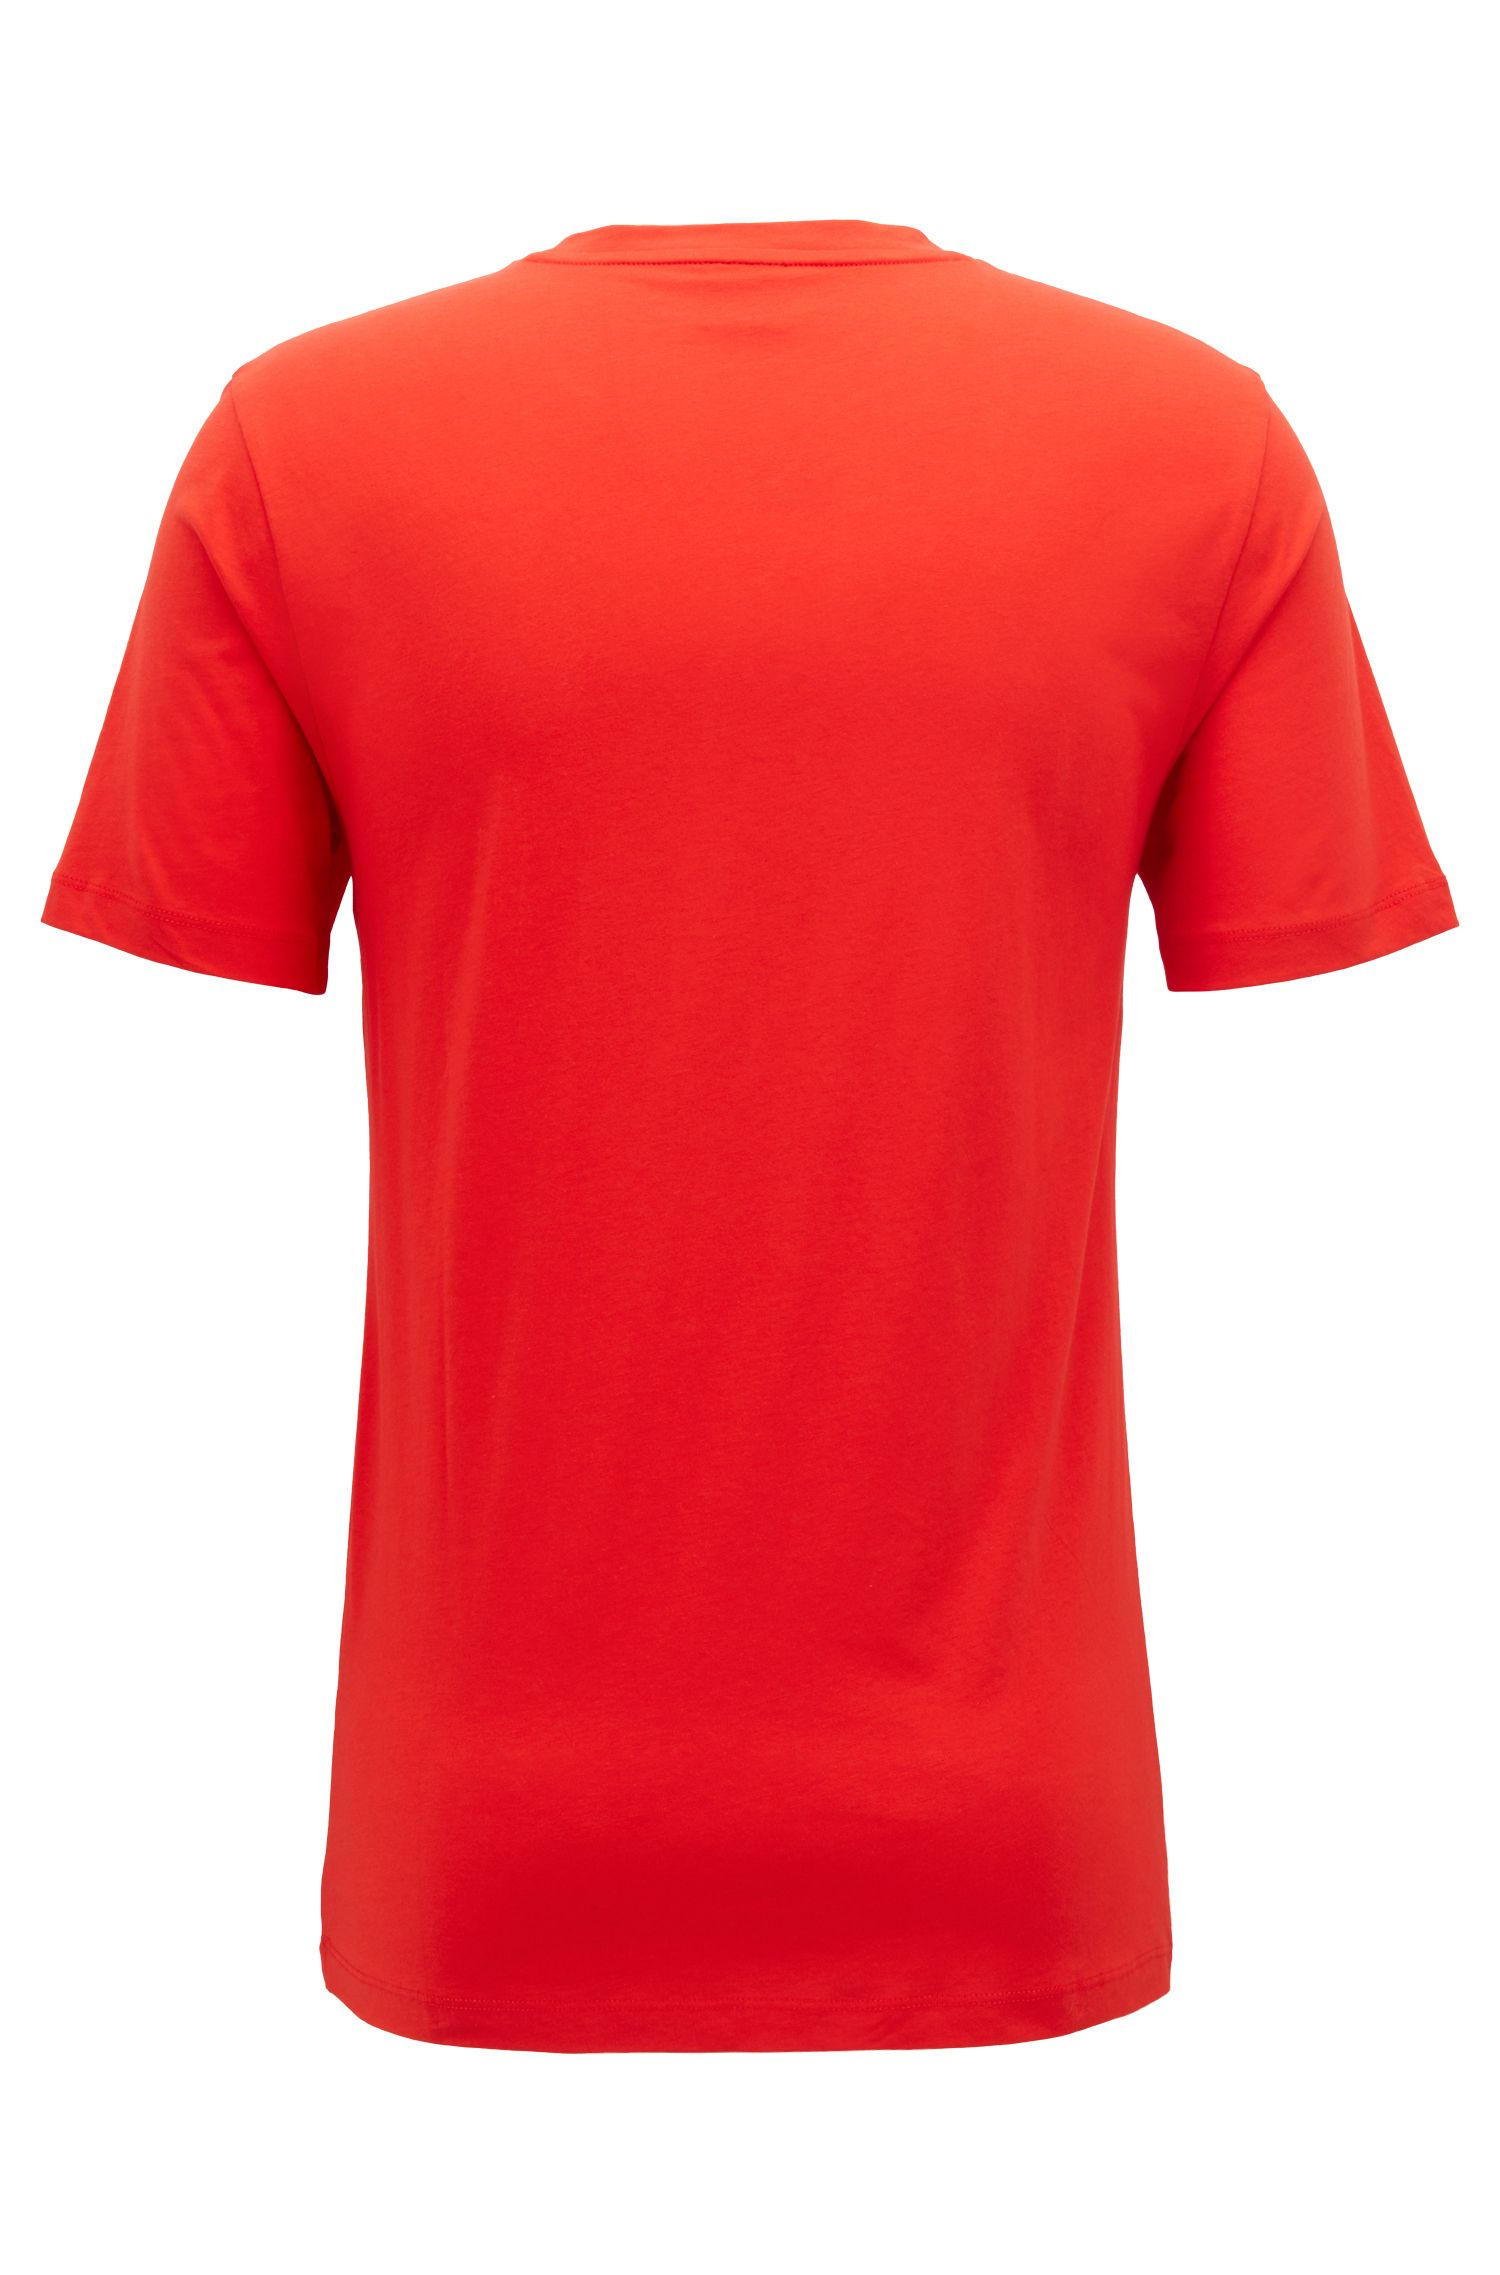 Crew-neck T-shirt in cotton with large logo print, Red